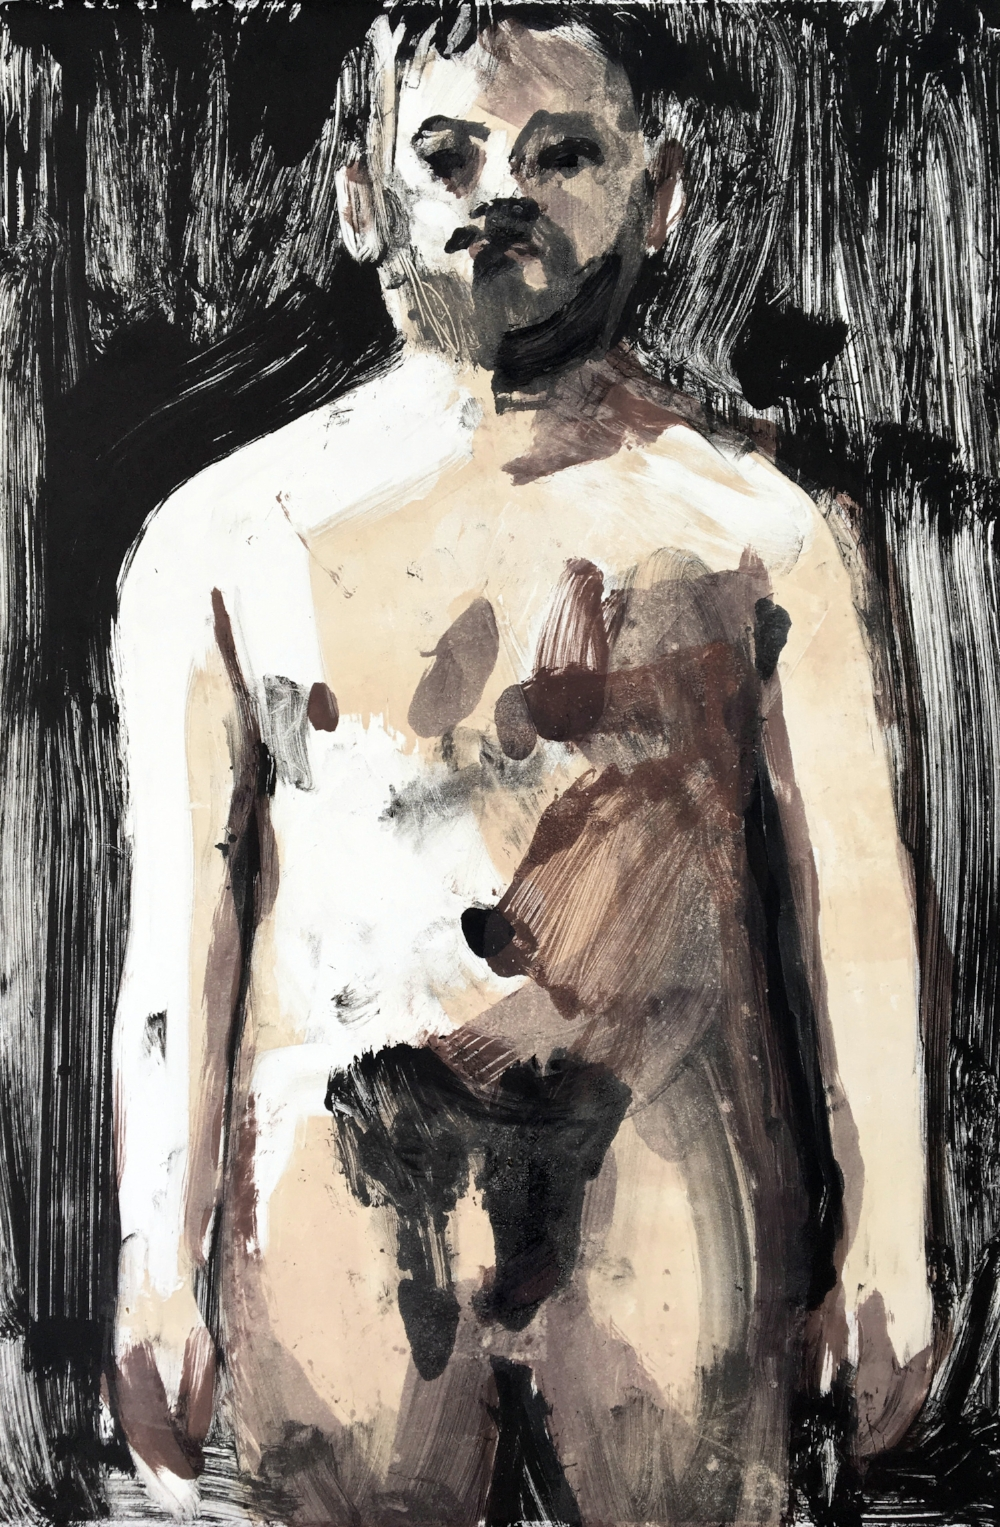 Self-Portrait With No Clothes On  2018, monotype